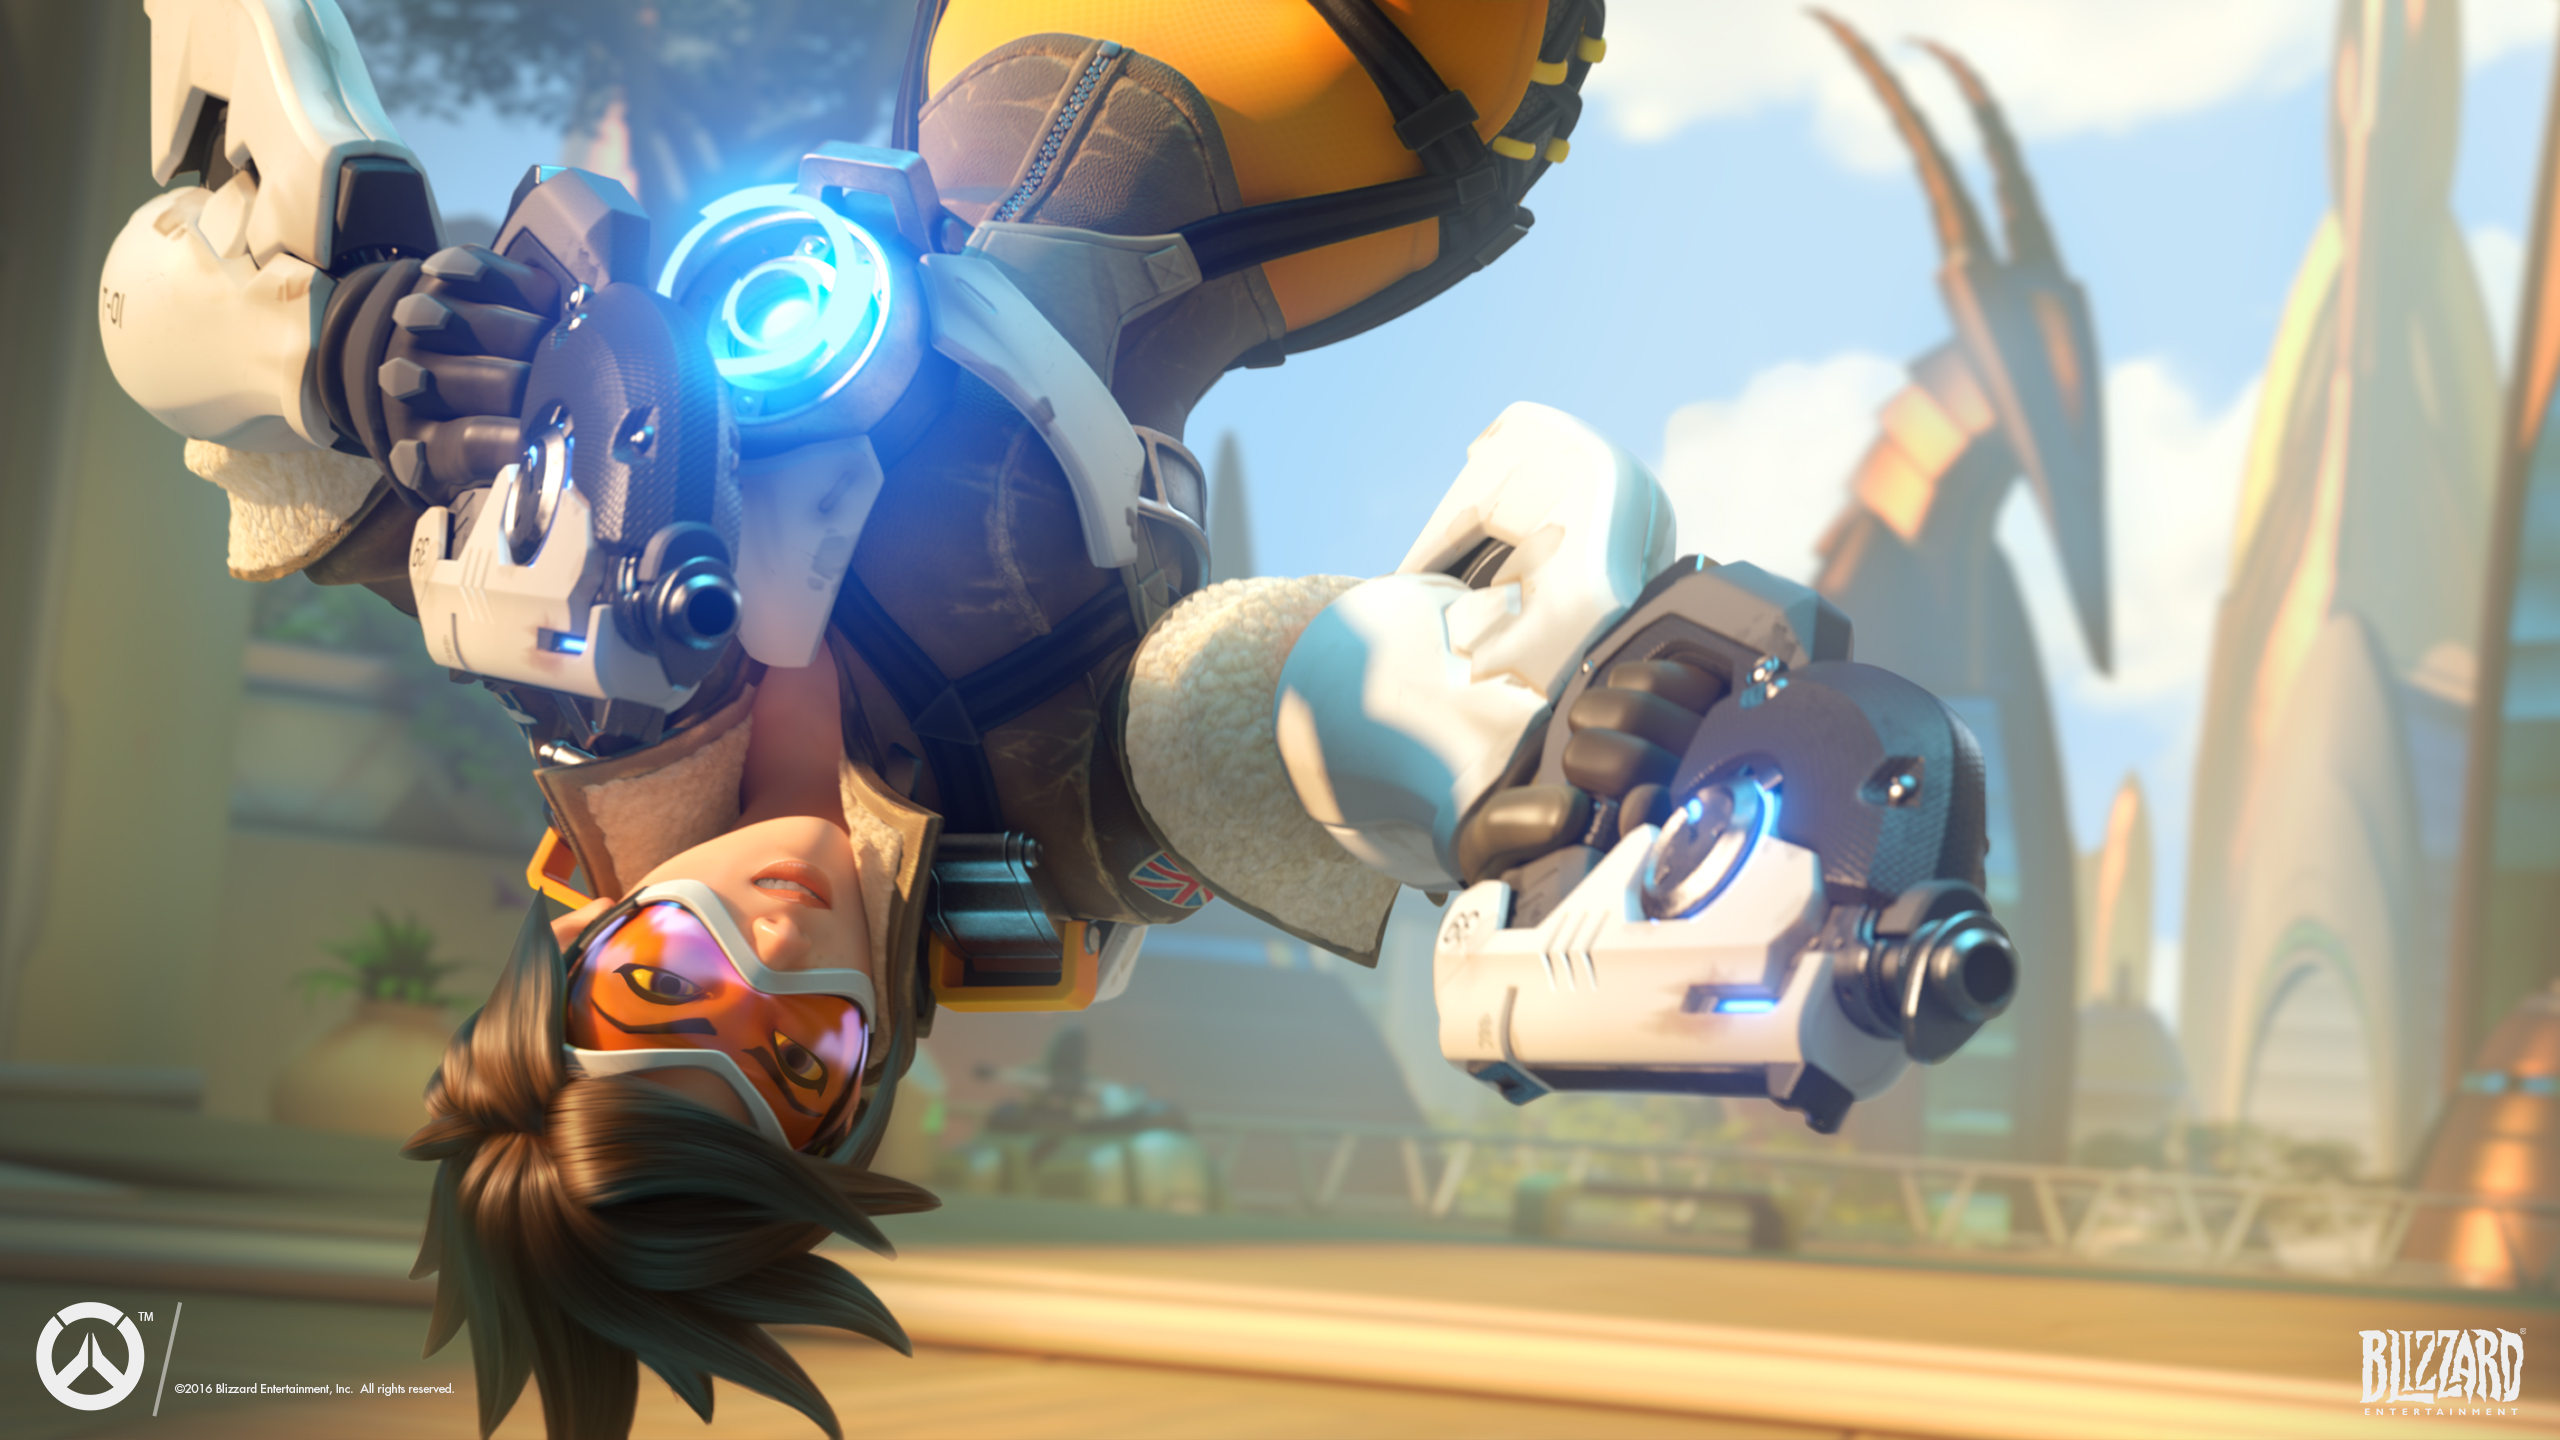 Tracer Overwatch Action Wallpapers HD Wallpapers 2560x1440